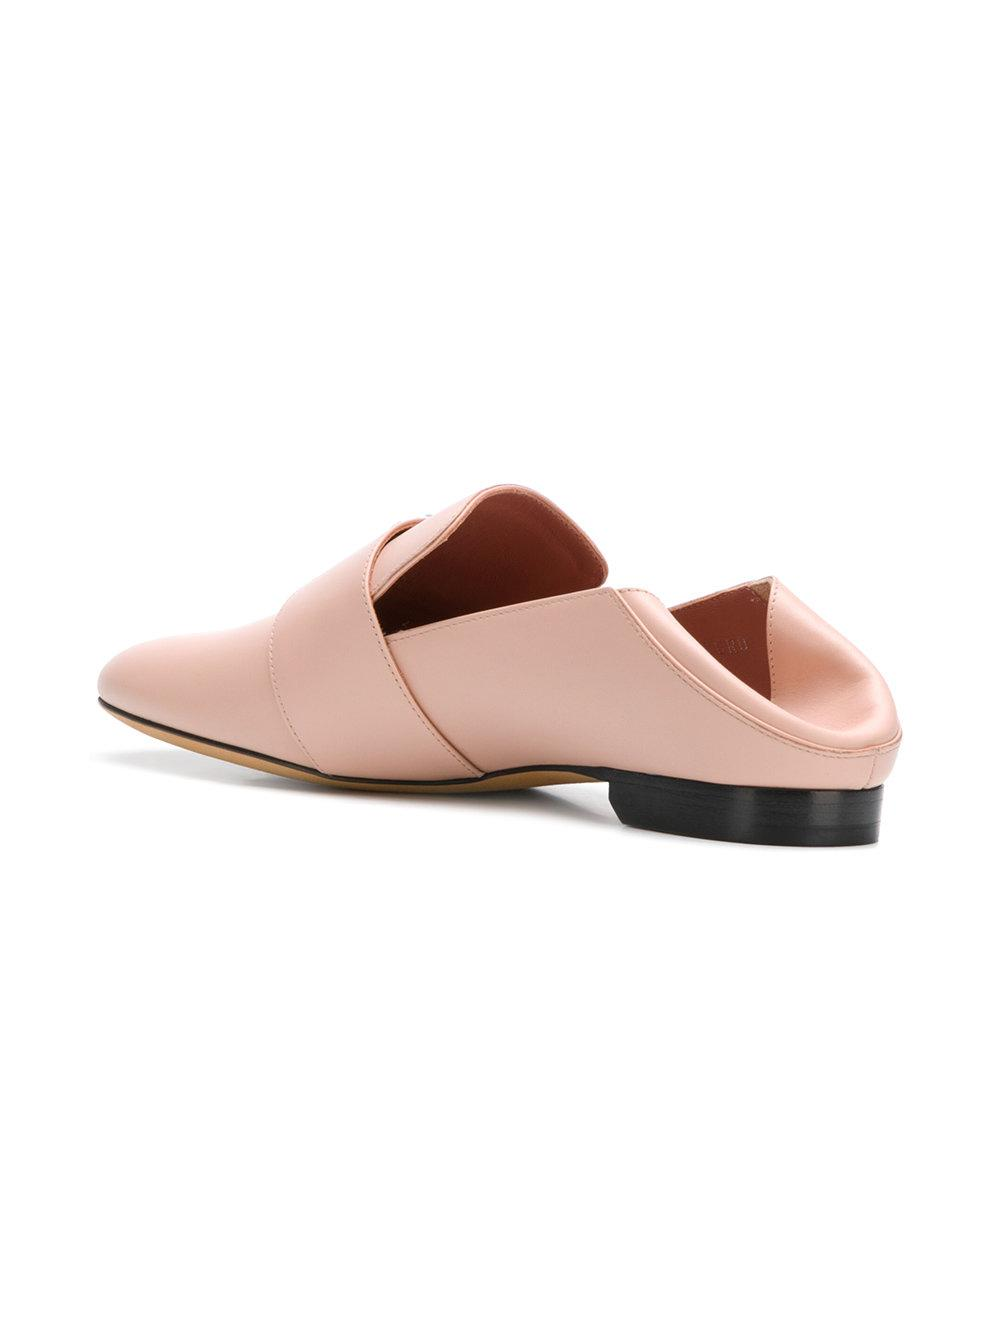 Bally side brooch embellished slippers - Pink & Purple